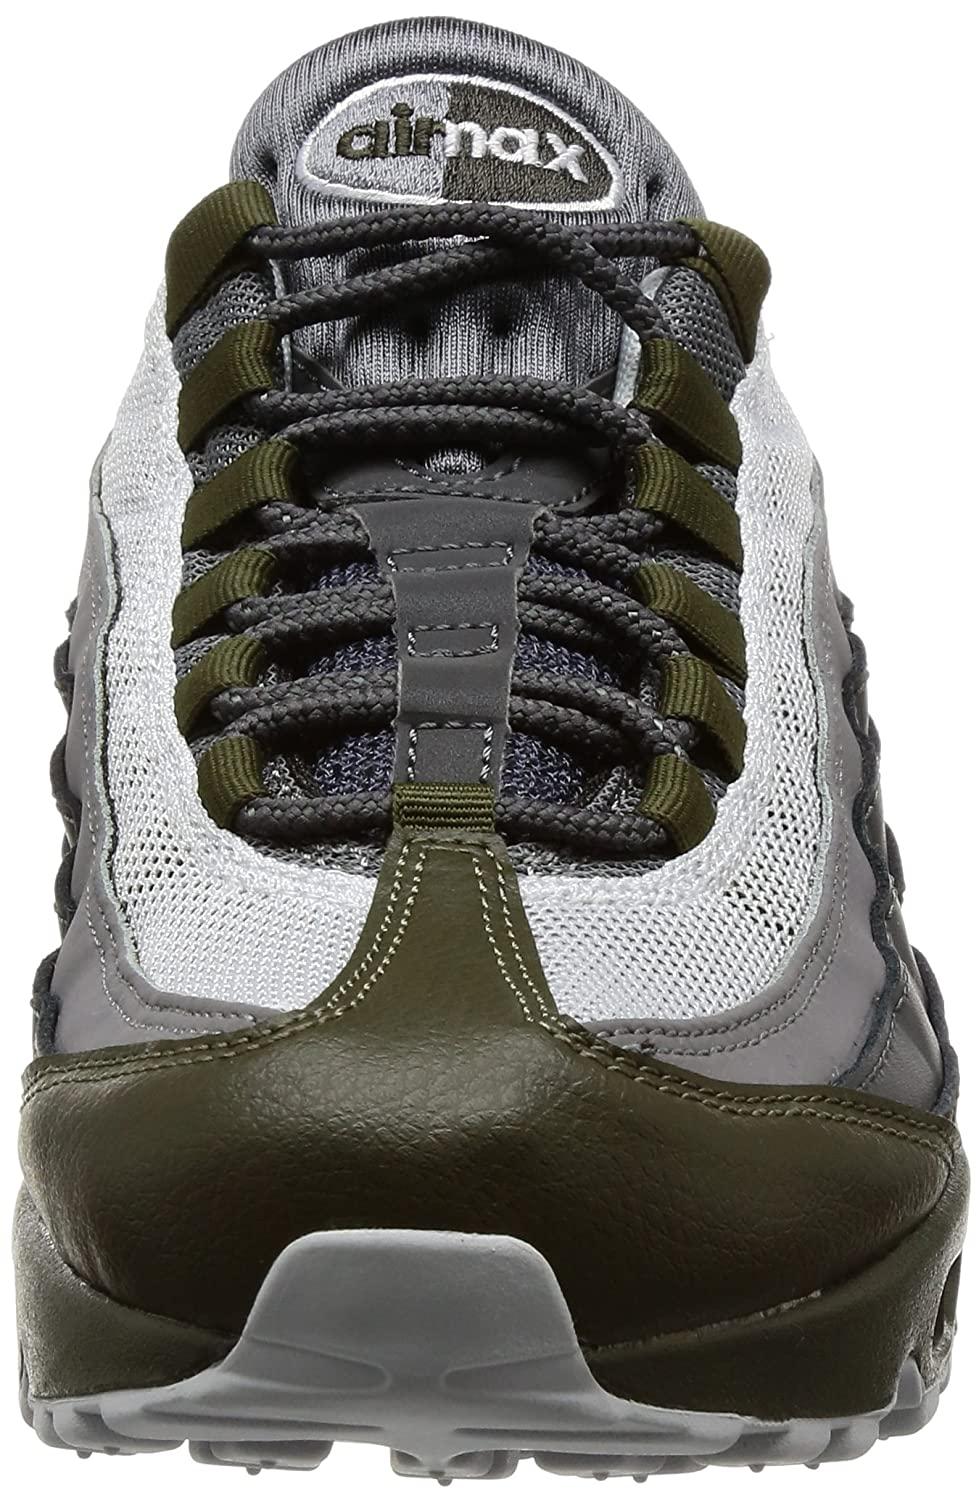 separation shoes ae4e0 b8bec Amazon.com   Nike Air Max 95 Essential Mens Running Shoe   Running